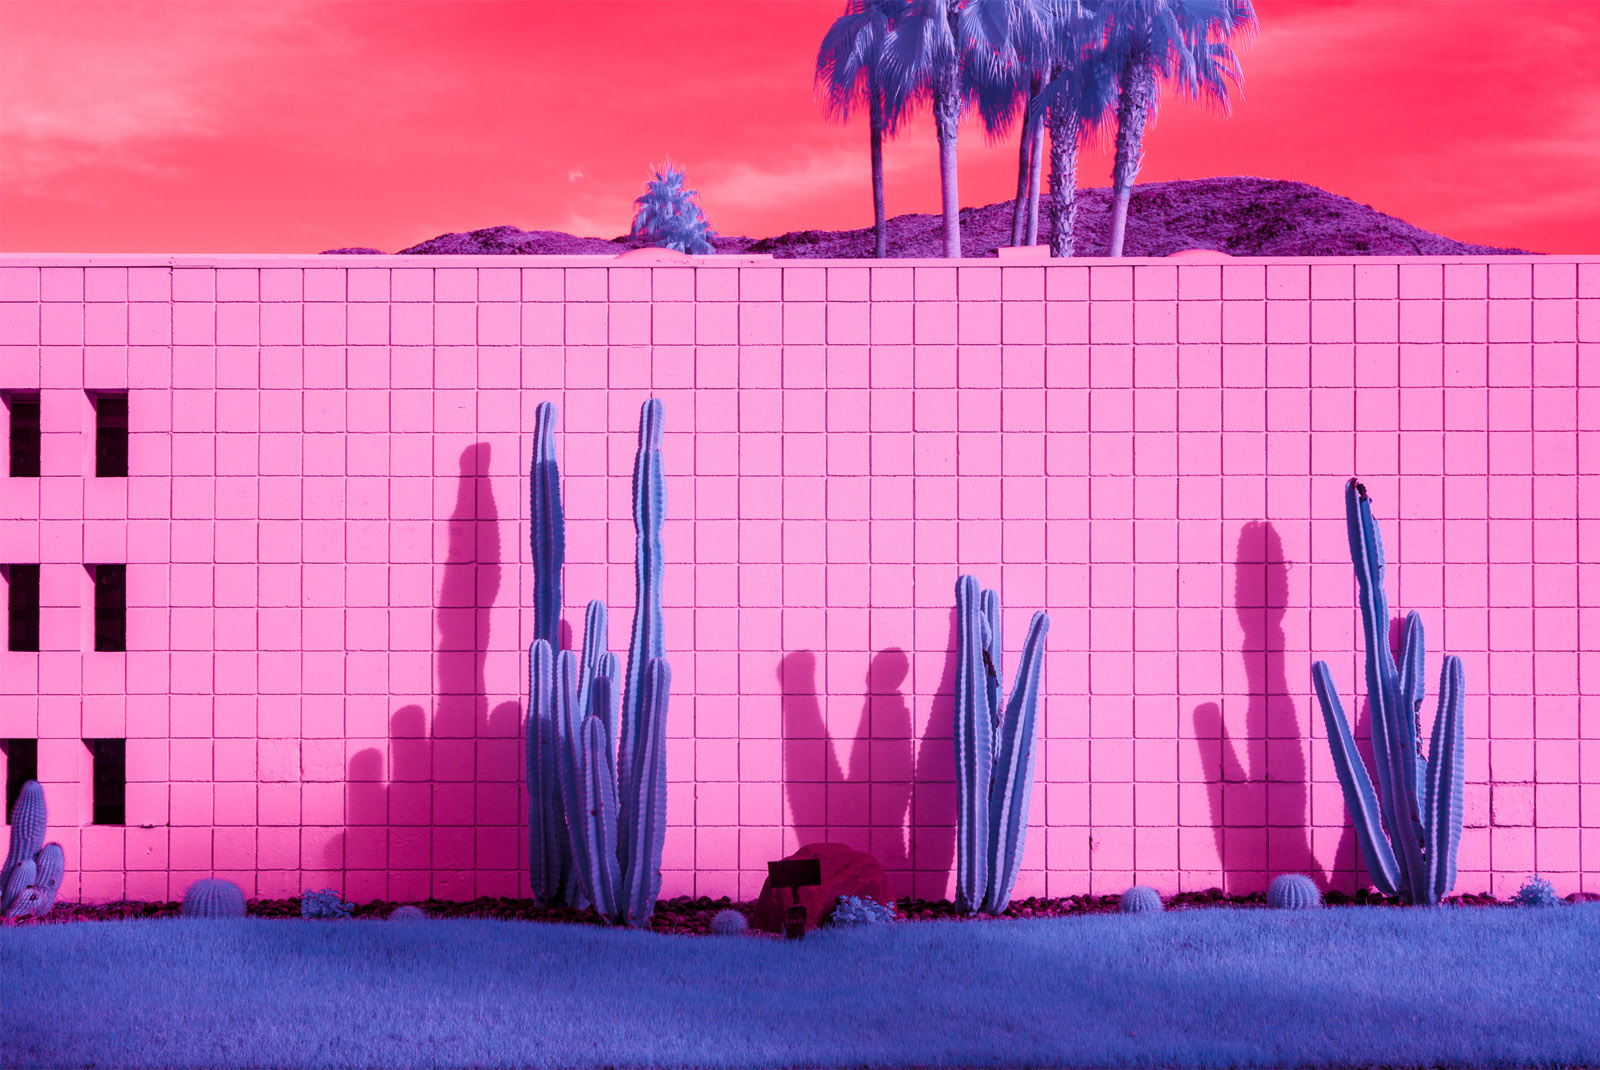 Infrared image of a cactus in front of a brick wall in Palm Springs with palm treesin the background